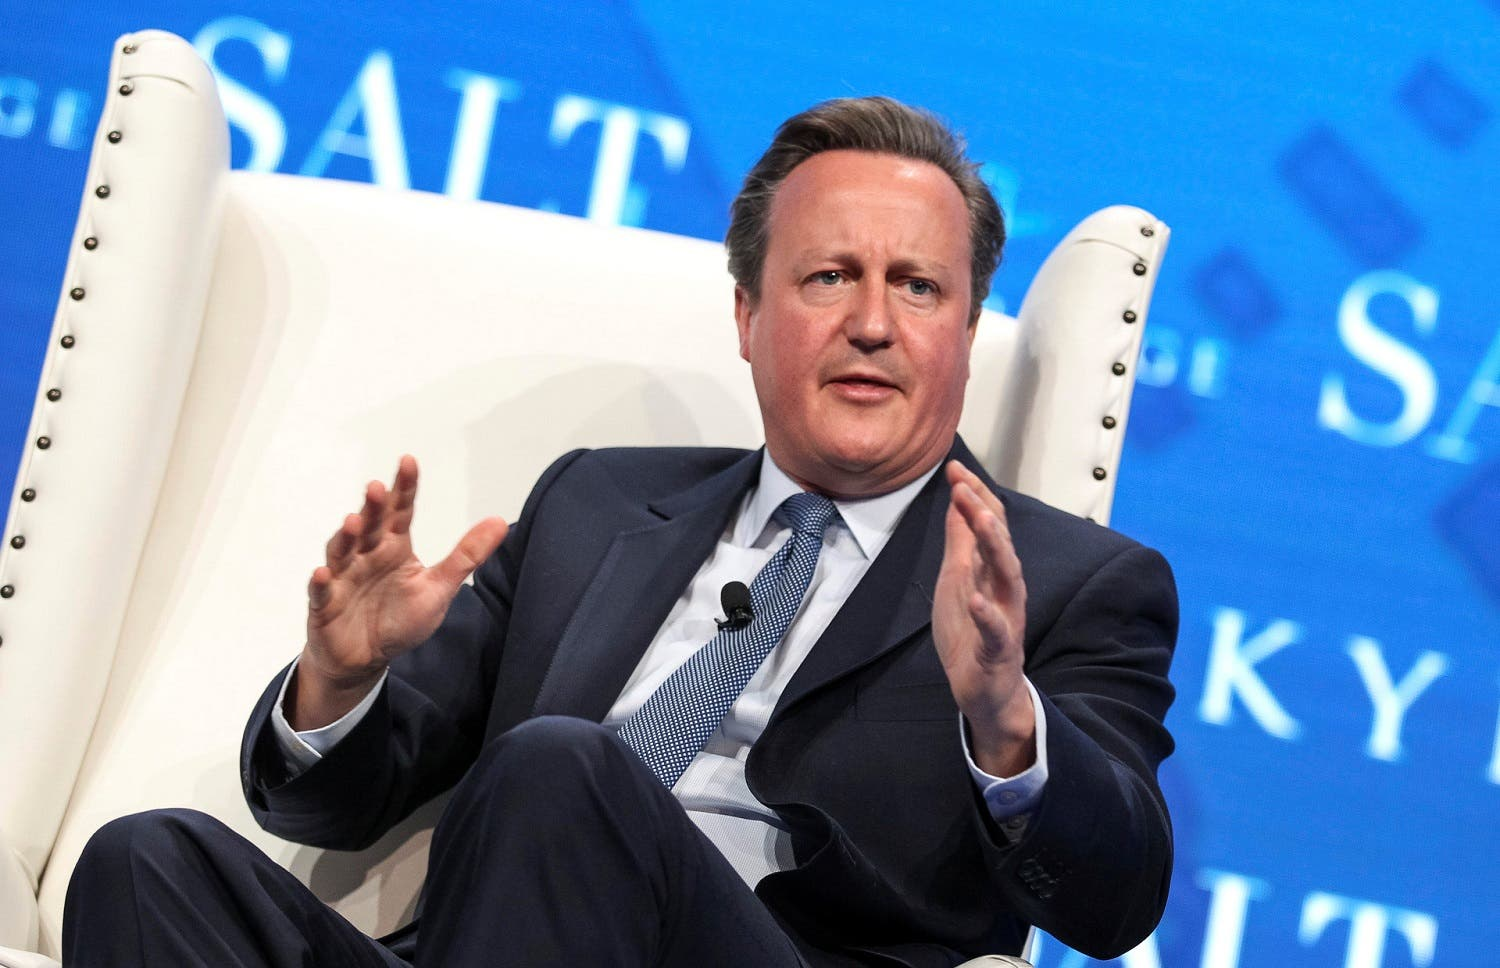 Former British Prime Minister David Cameron speaks during the SALT conference in Las Vegas, Nevada, US May 17, 2017. (Reuters)